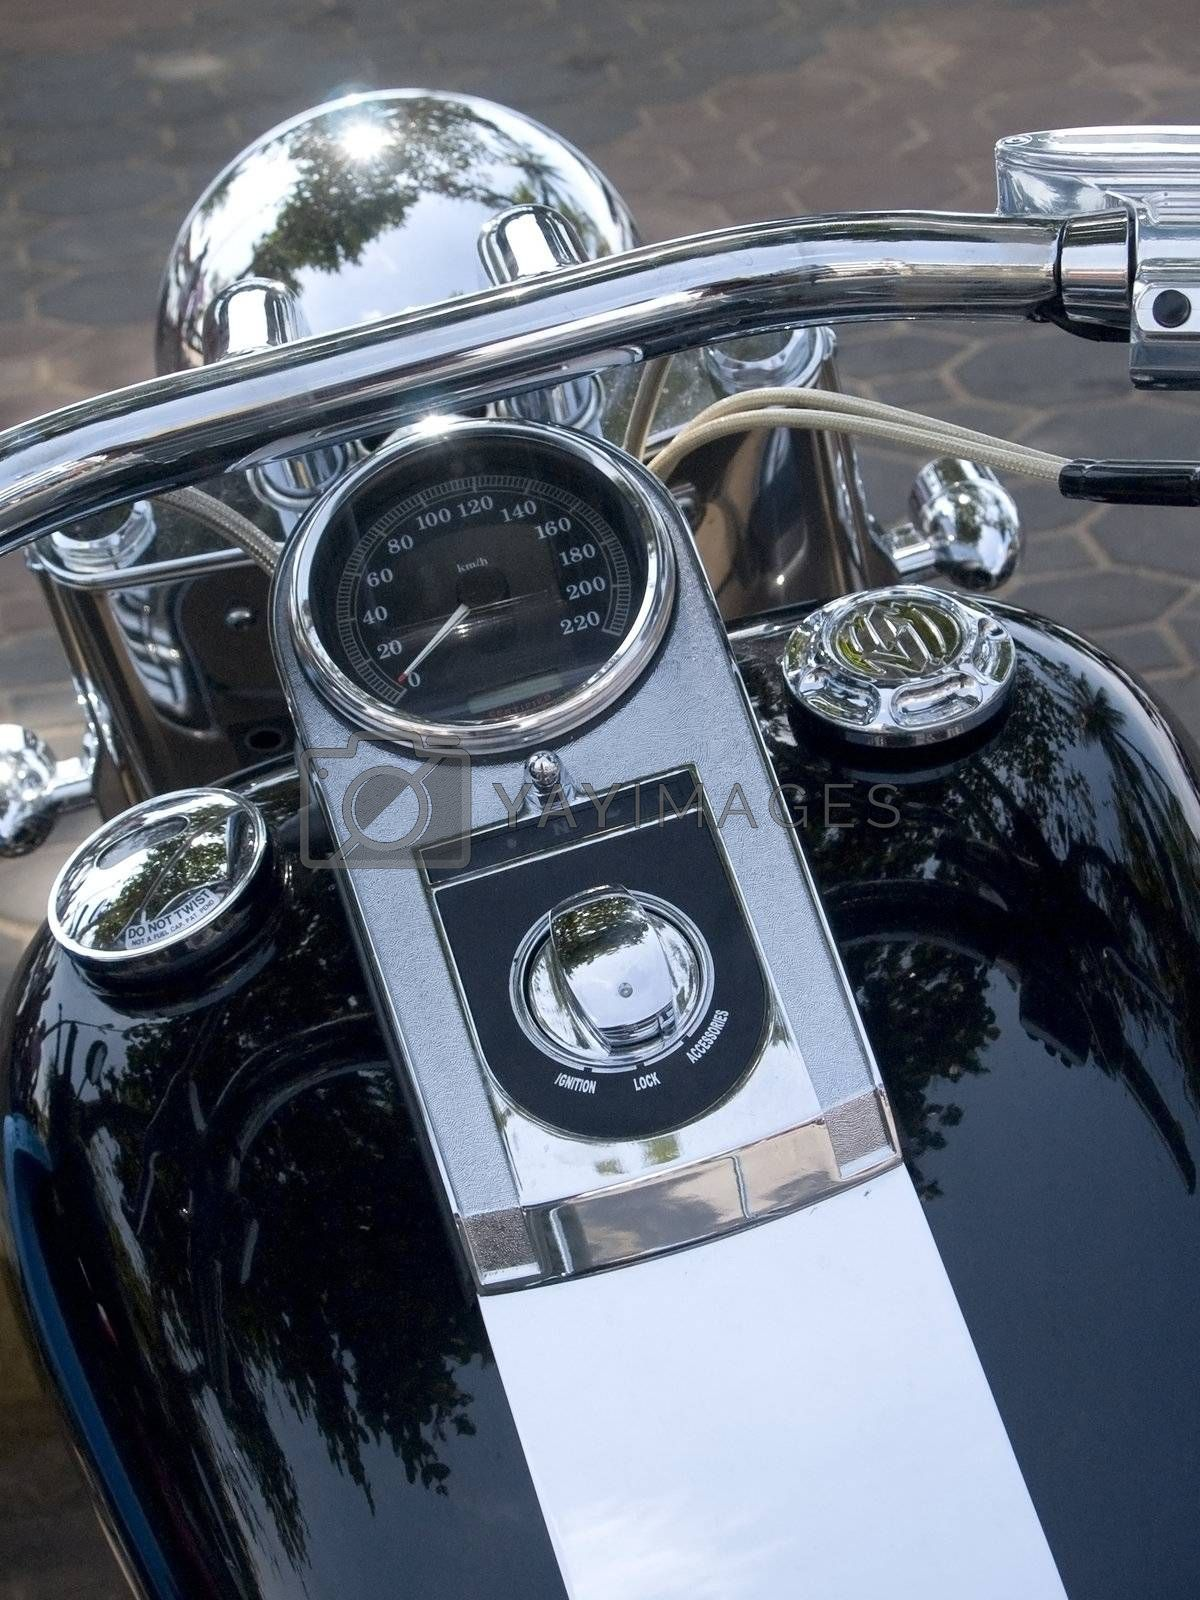 Front of motorcycle by epixx